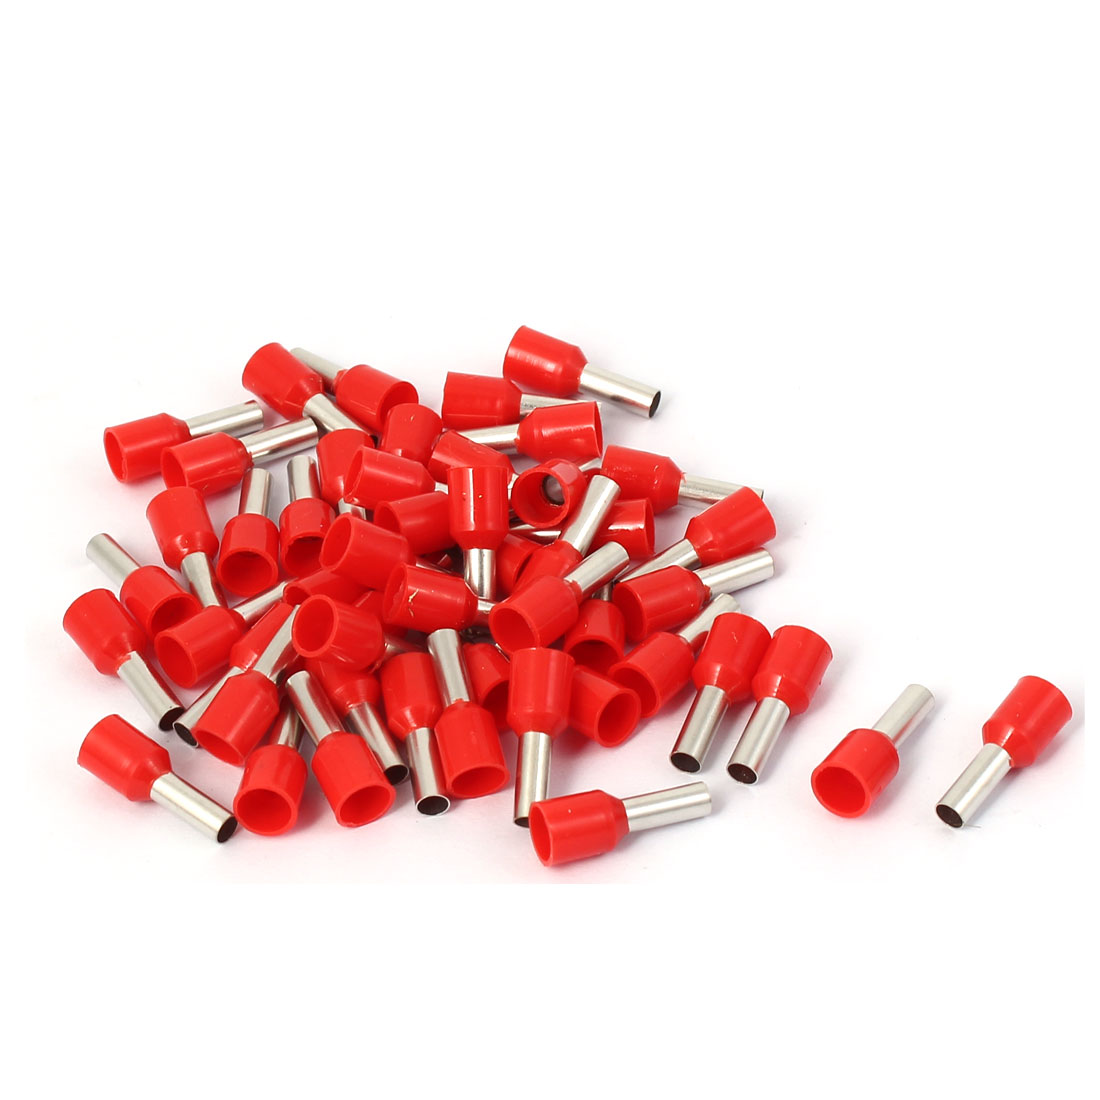 E4009 Tube Style Electrical Cable Wire Ends Crimp Insulated Terminal 50pcs